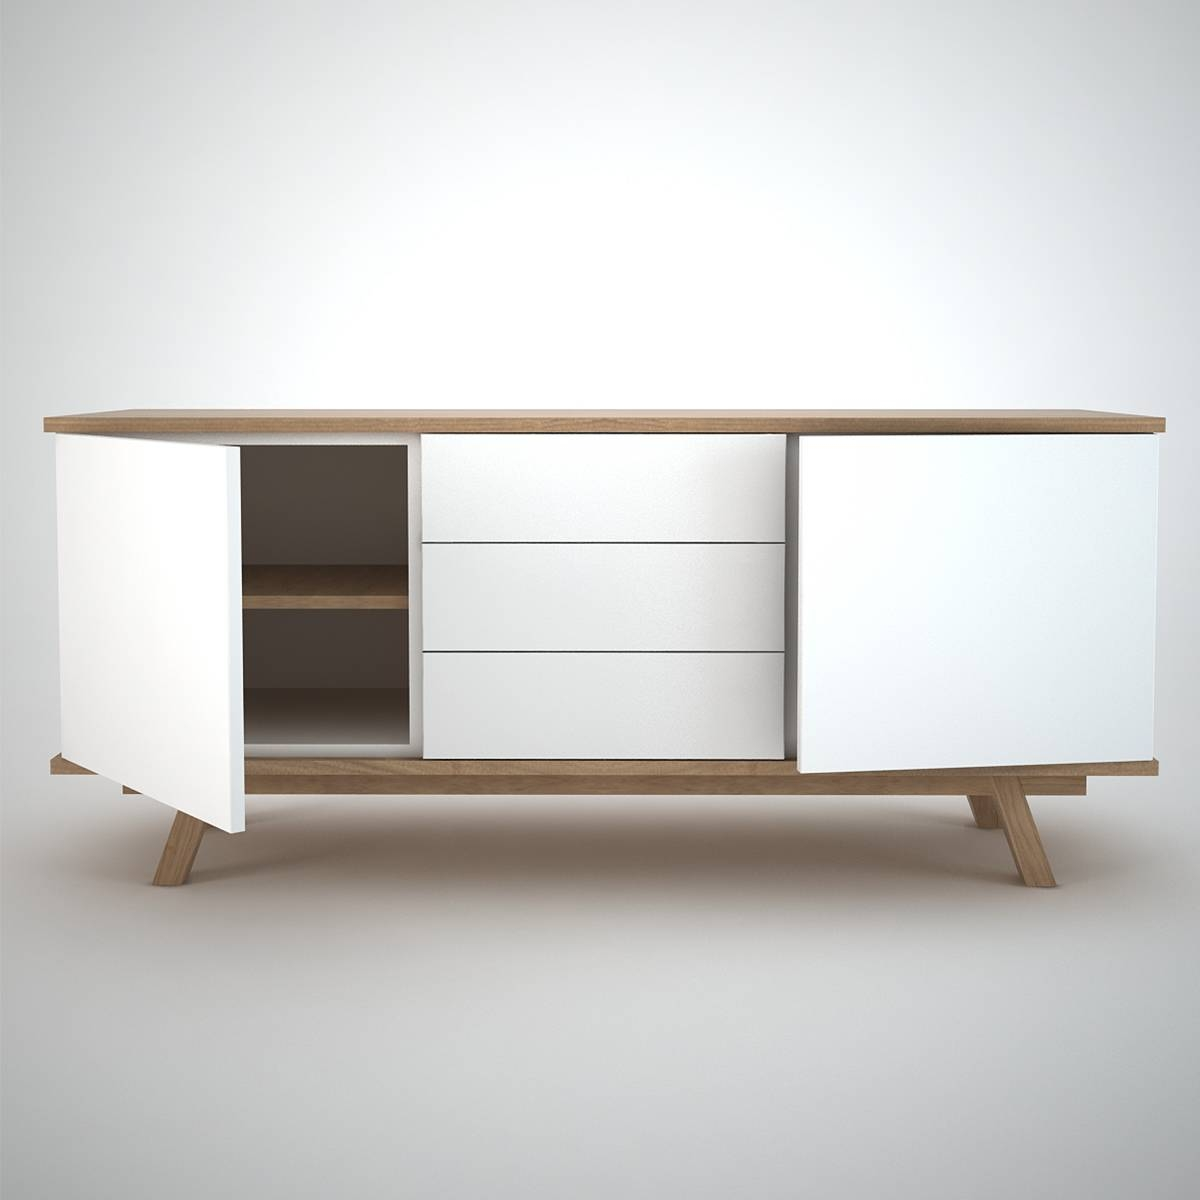 Ottawa Sideboard (2+3) White - Join Furniture intended for Contemporary White Sideboards (Image 15 of 30)